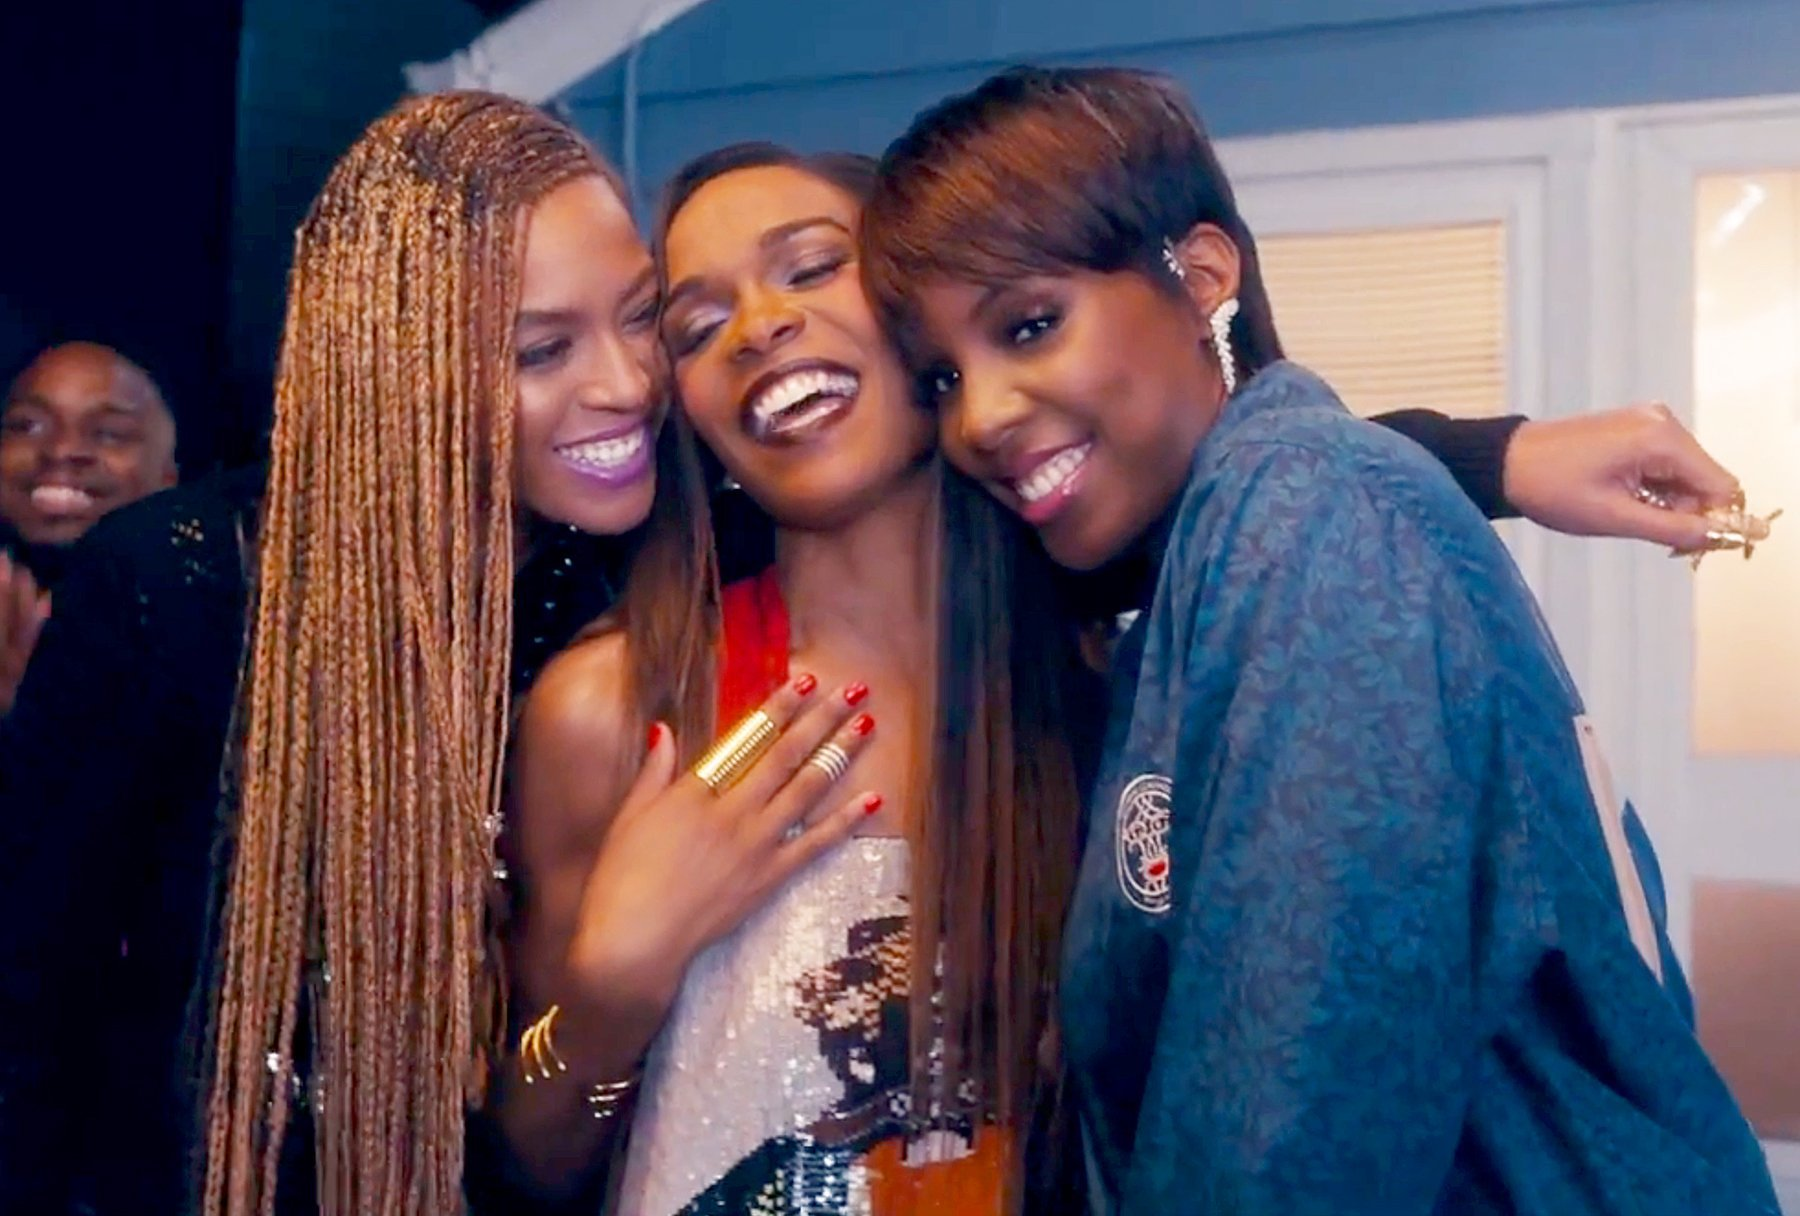 destinys-child-beyonce-michelle-williams-kelly-rowland-zoom